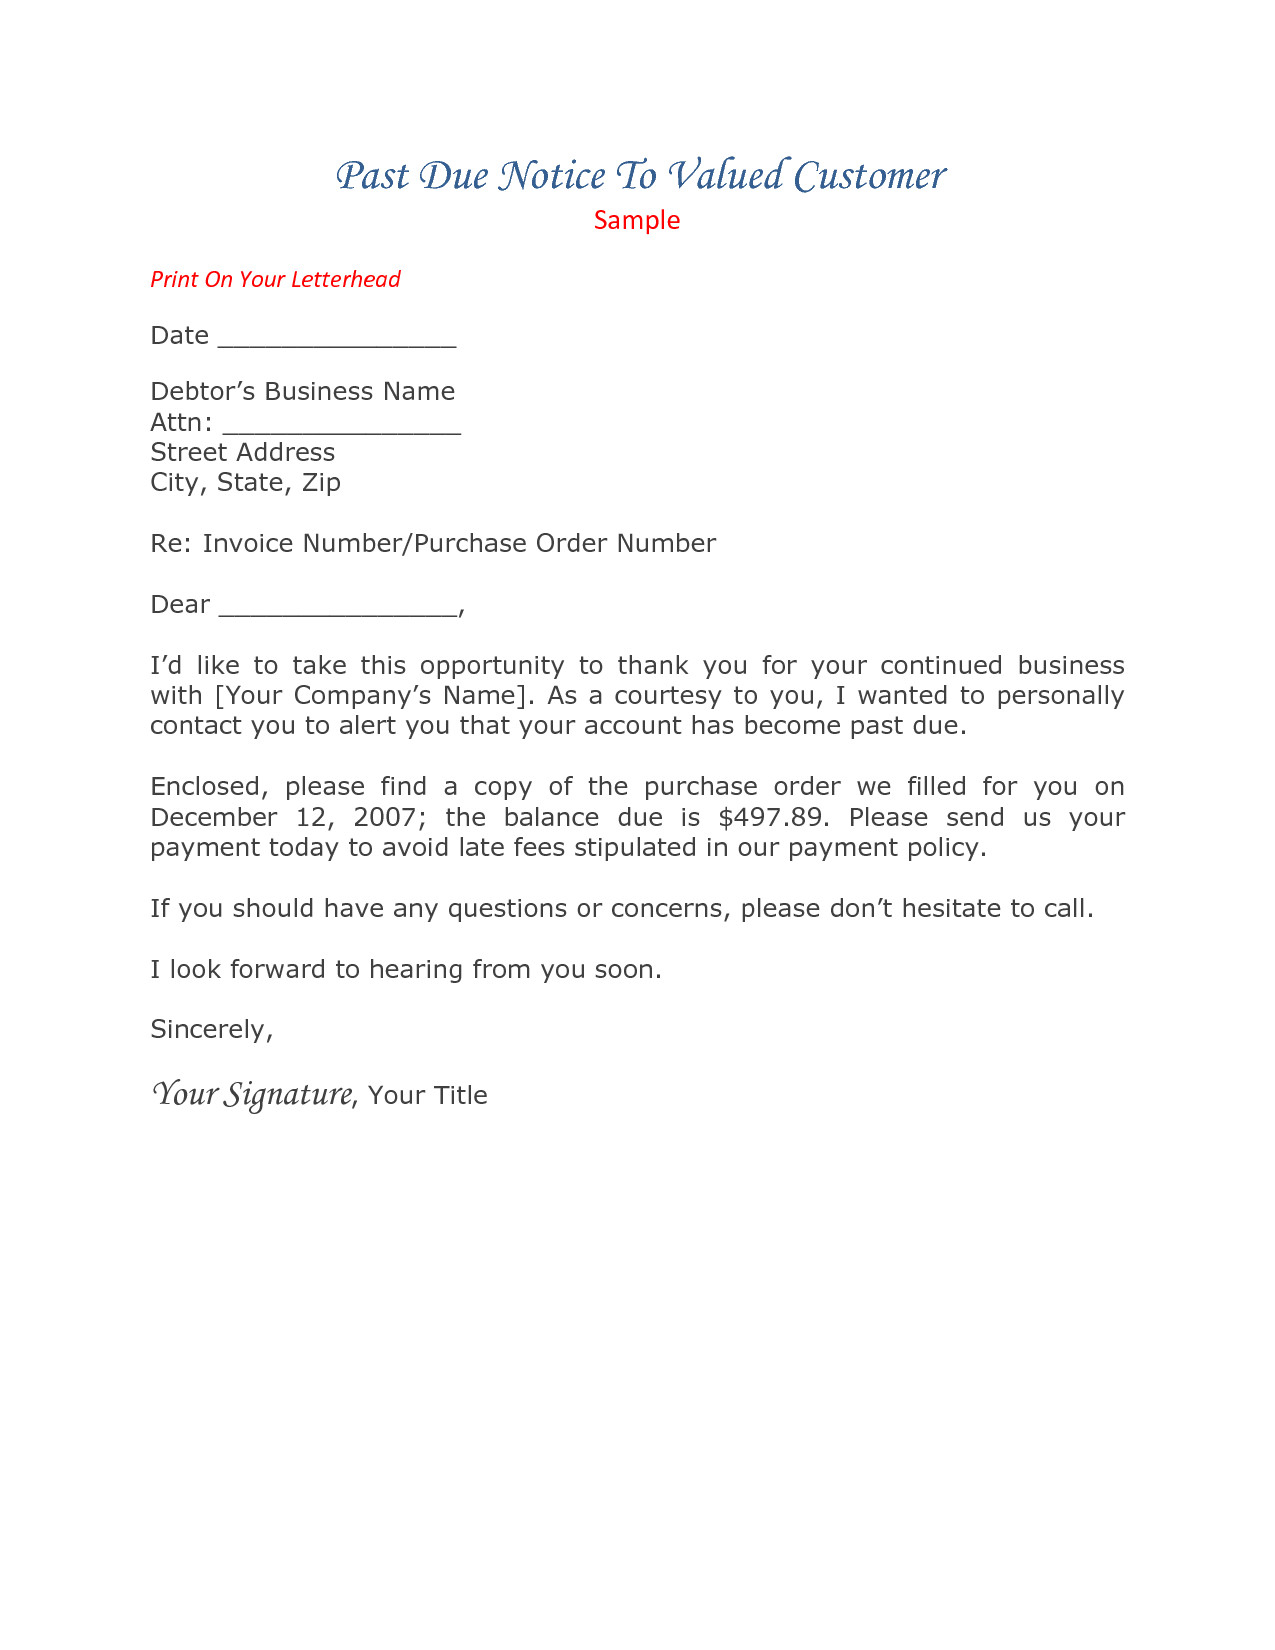 past due letter template past due rent letter template samples letter cover templates 13756